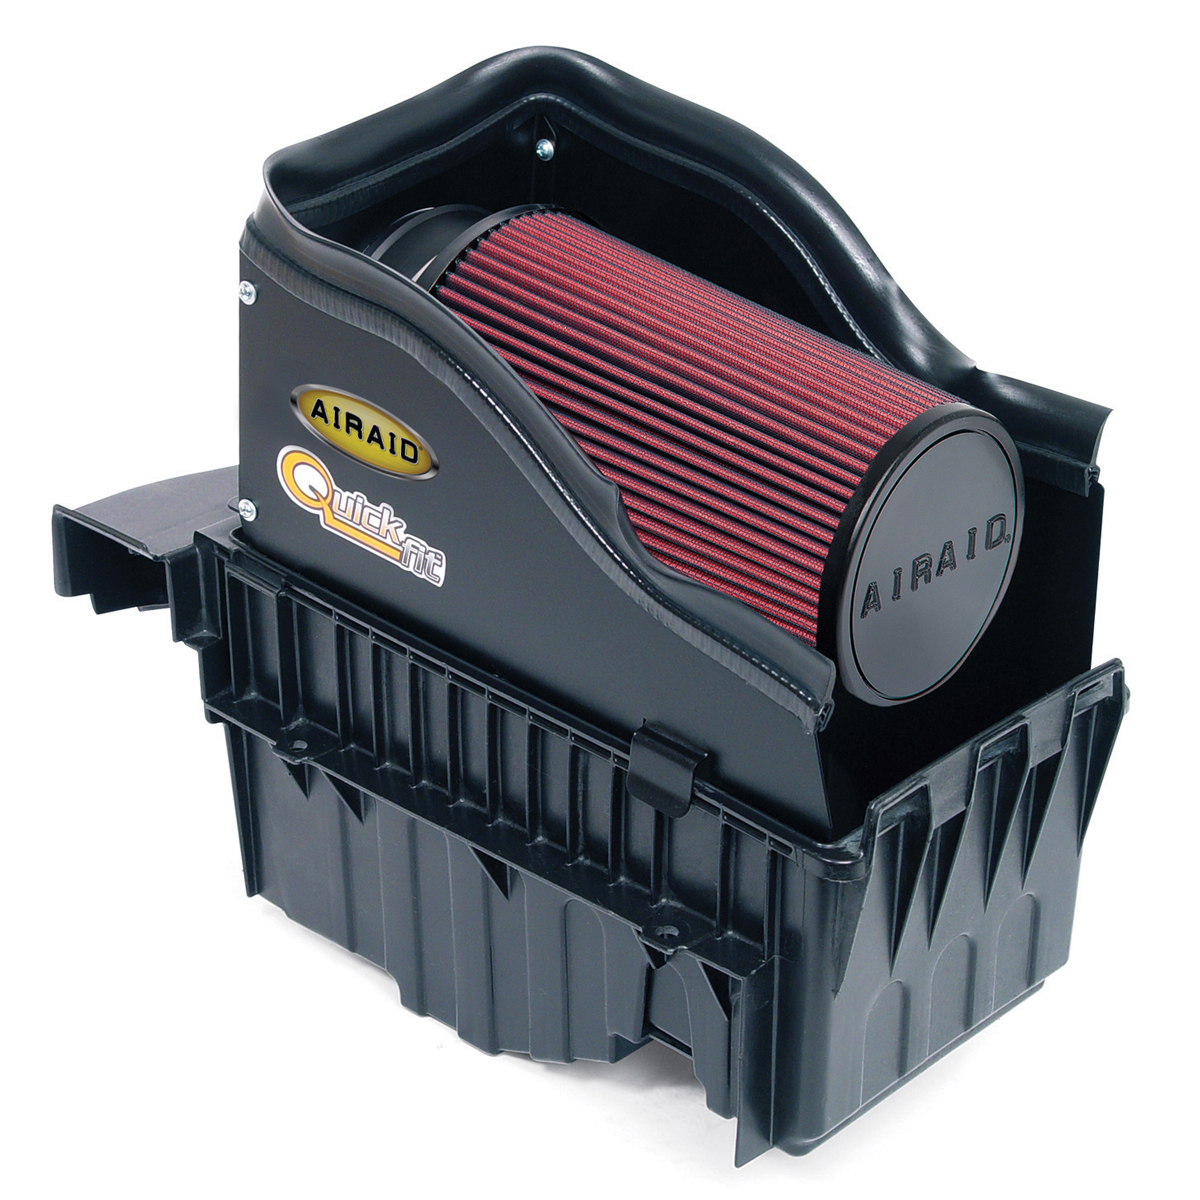 Airaid Quick Fit Intake for late 1999-2003 7.3L # 400-122